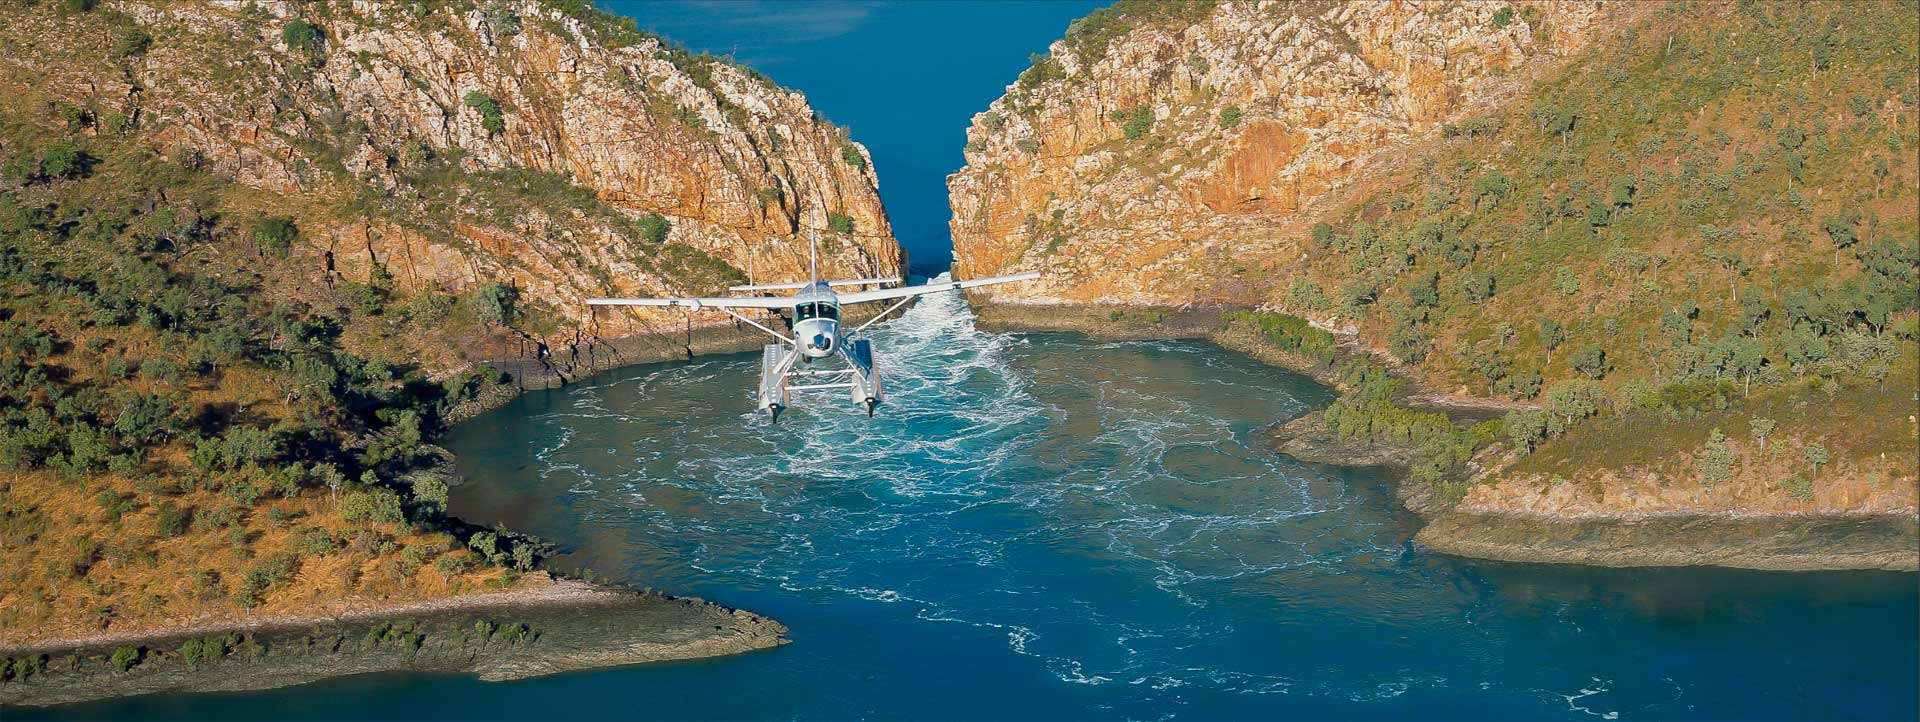 HORIZONTAL-FALLS-plane-flight-view-of-aircraft